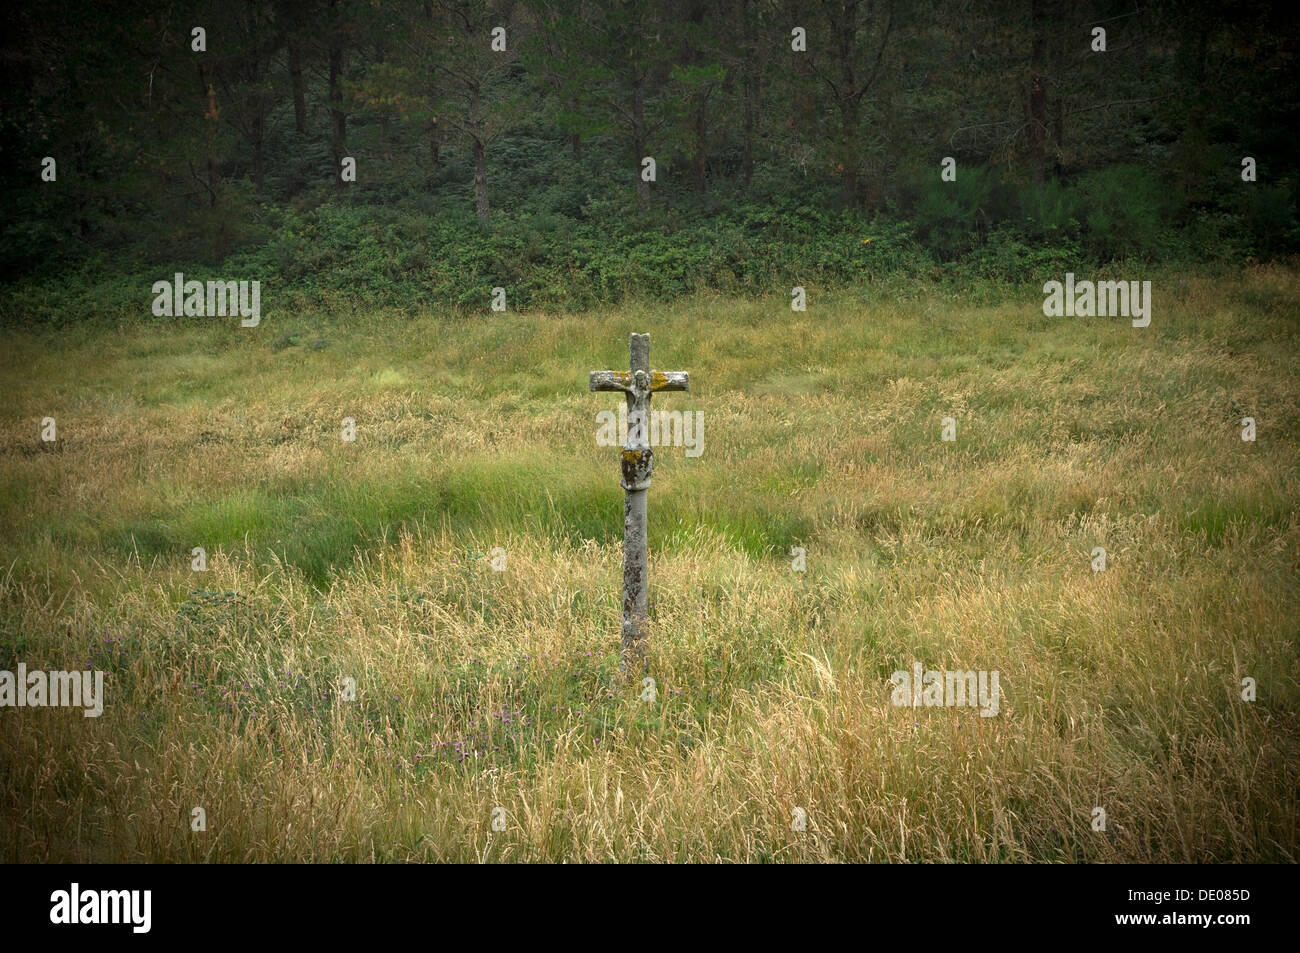 A stone cross hidden among the vegetation in the Way of St. Jame near Cee. - Stock Image